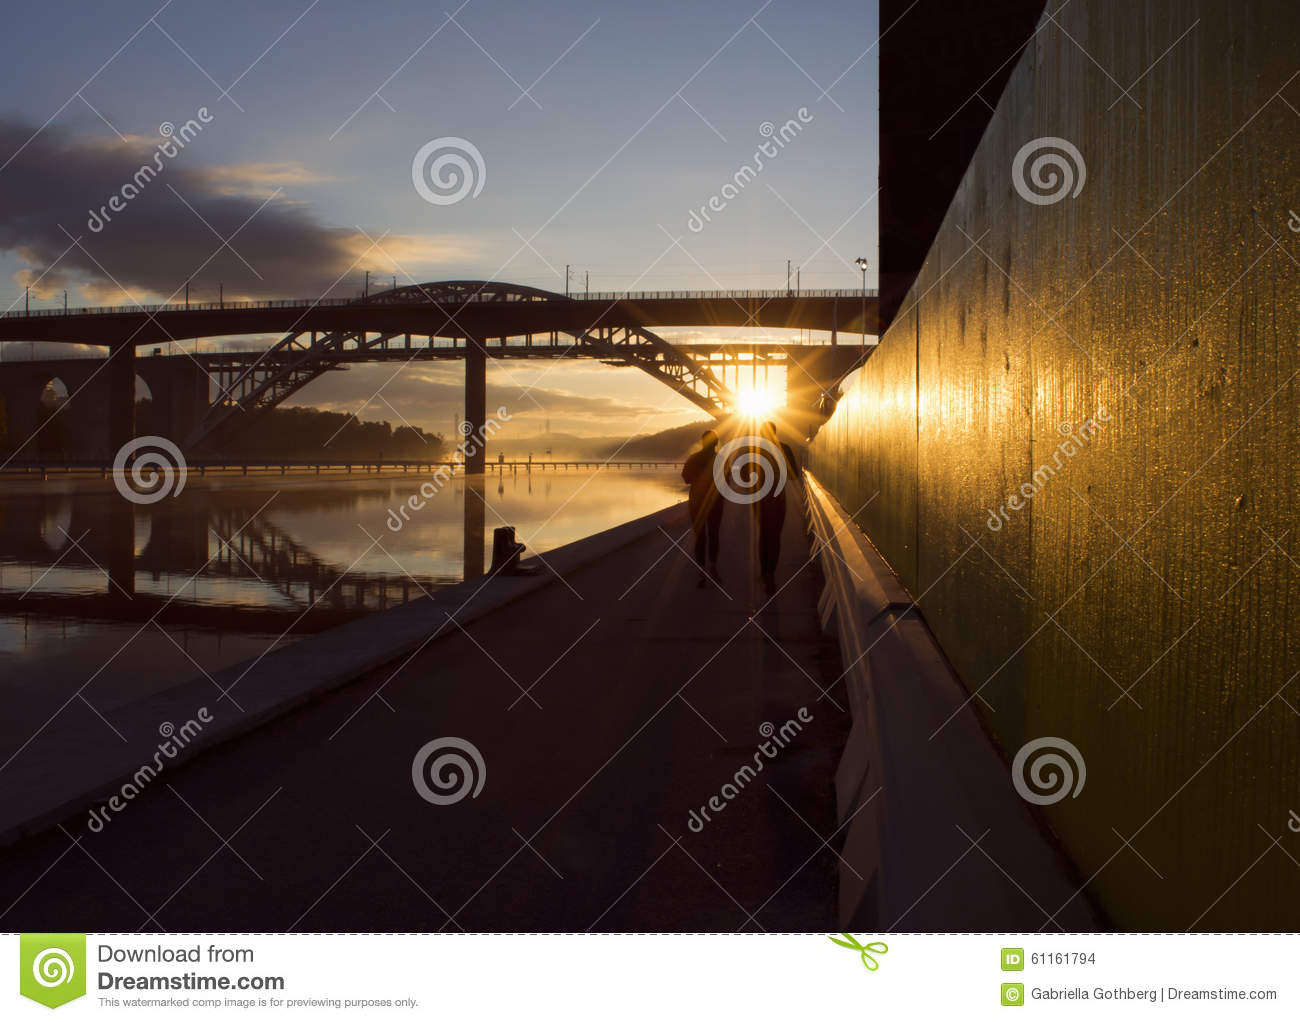 Silhouettes of couple running at beautiful, early dawn under a bridge.